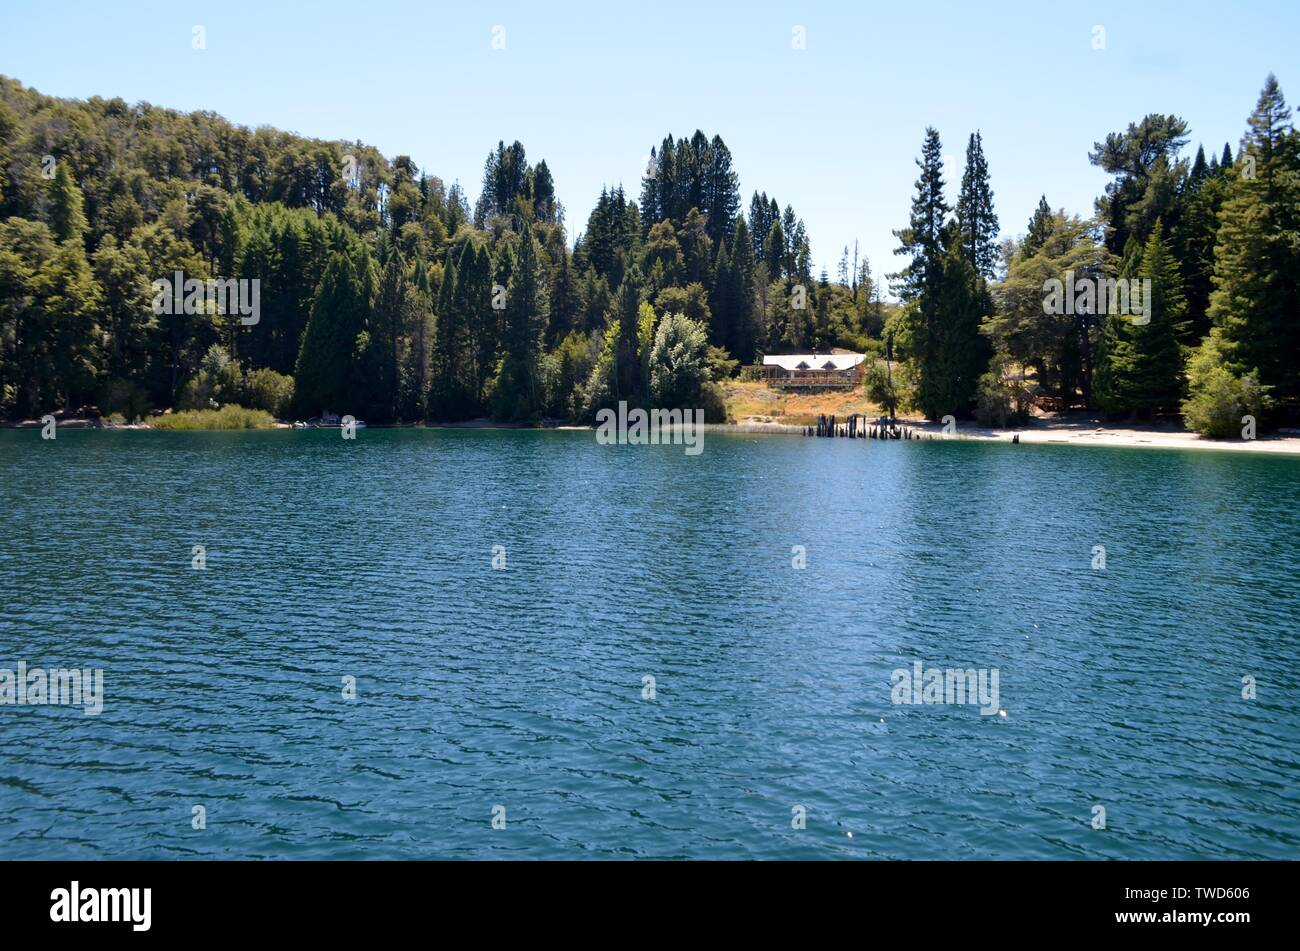 Bariloche, Argentina.Victoria Island view of the Anchorena Bay, Lake Nahuel Huapi from the side of a boat. - Stock Image